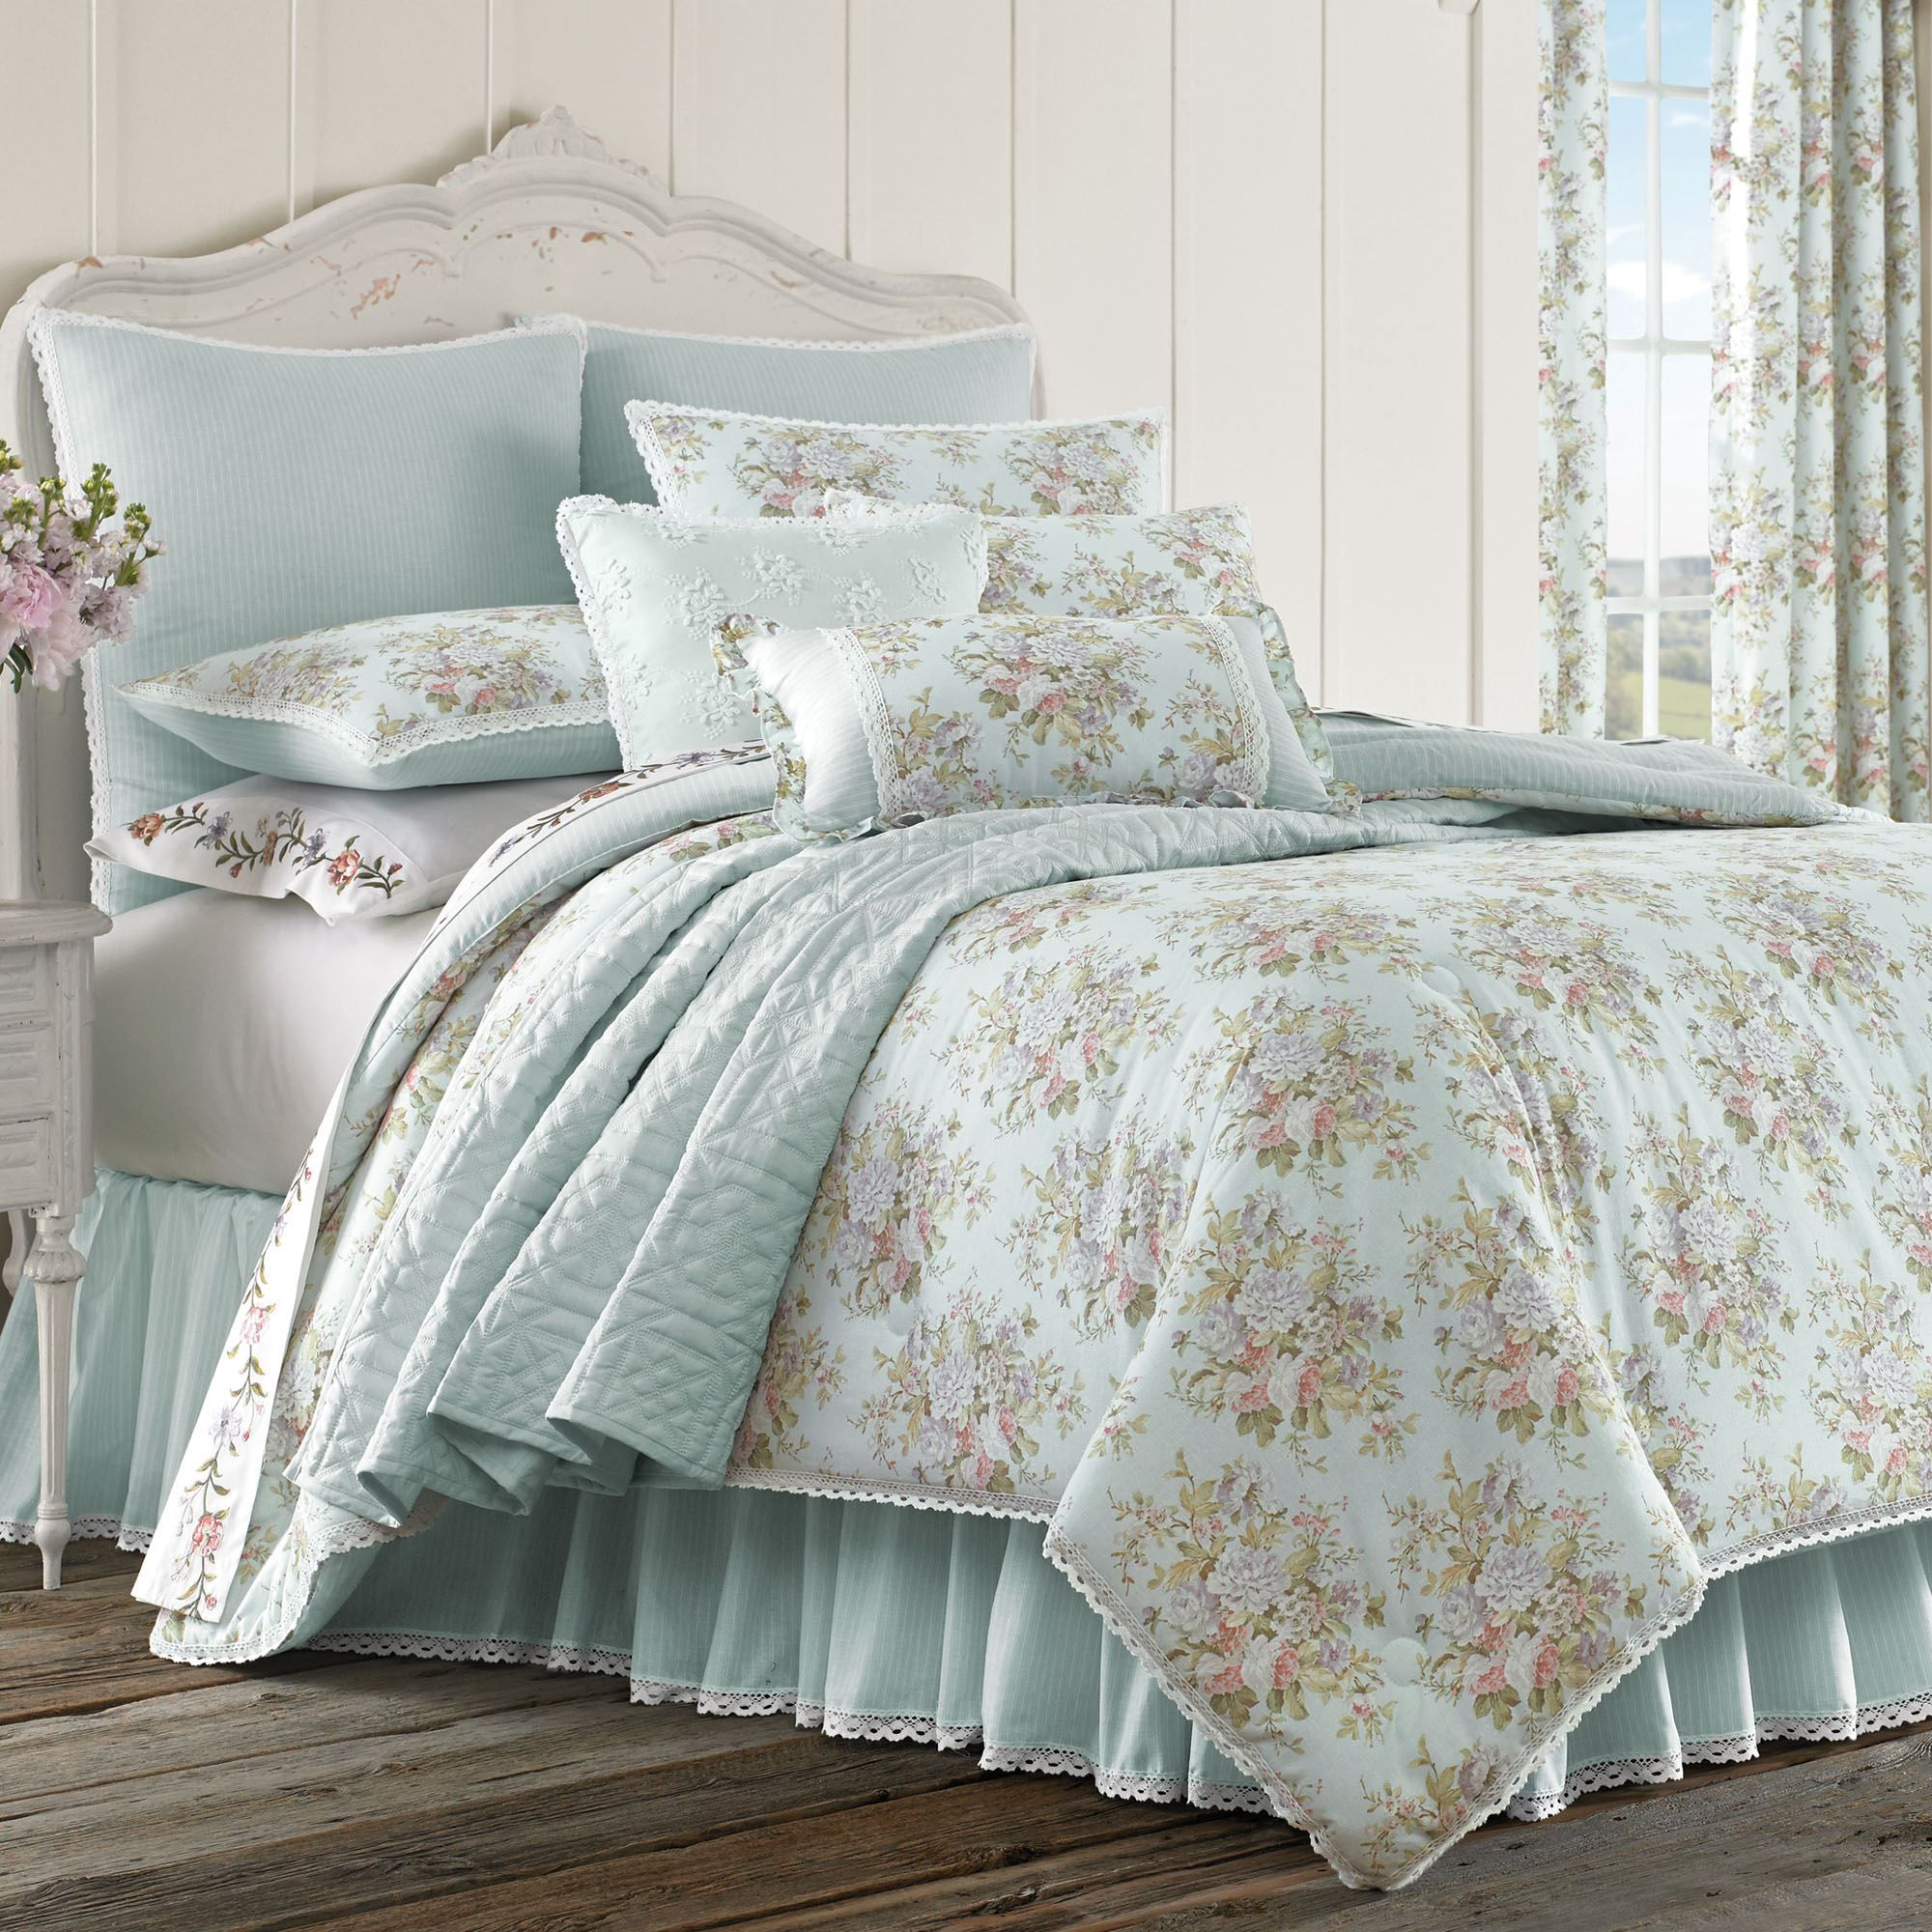 aj comforter by for curtains the ruffle waverly inches toile bedspreads black w moss set curtain country dust queen french home pin